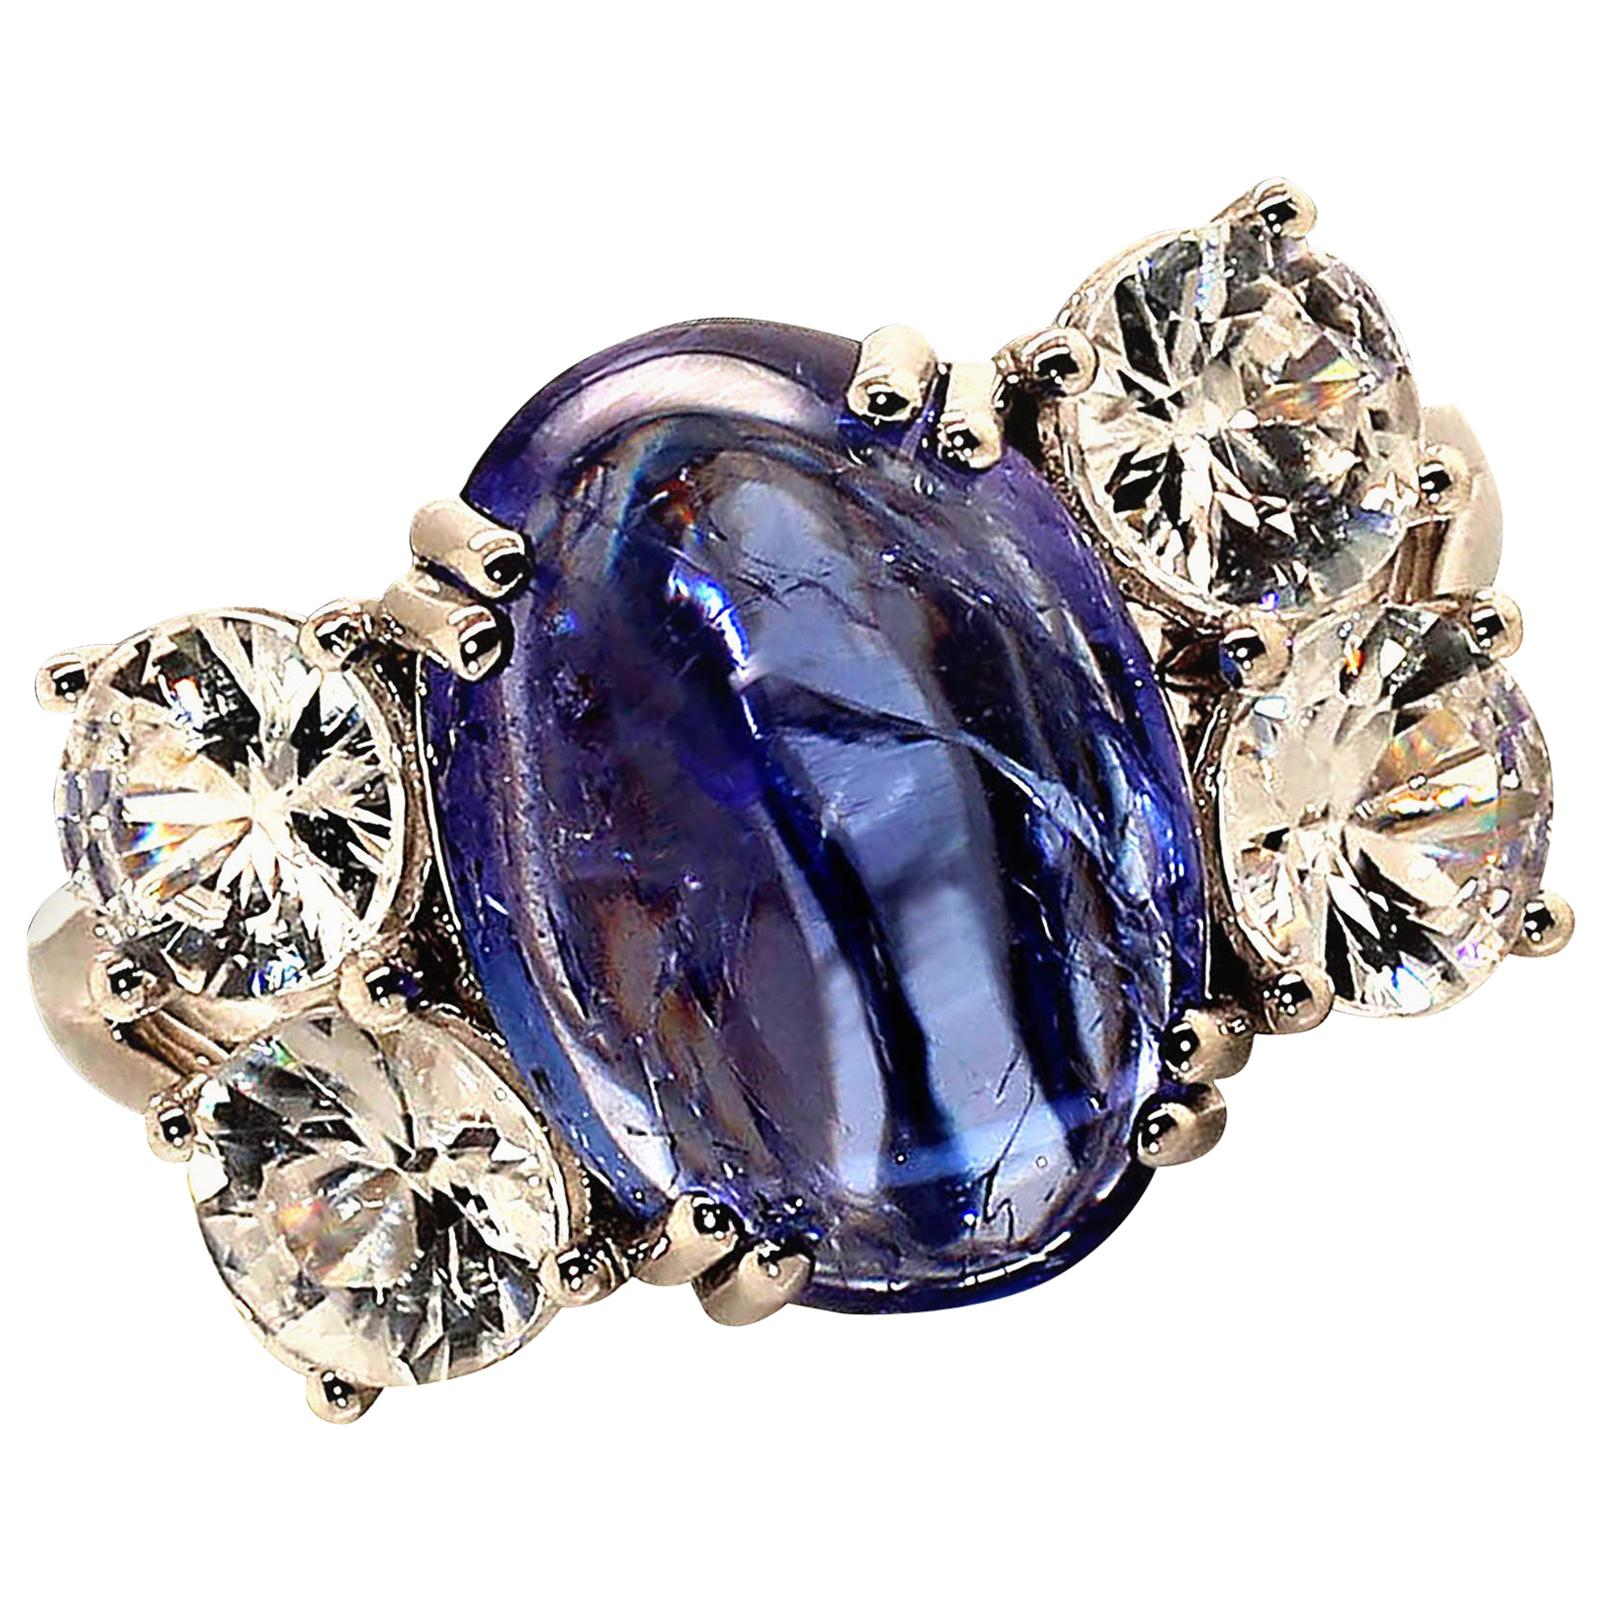 Dinner Ring of Cabochon Tanzanite and Sparkling Cambodian Zircons